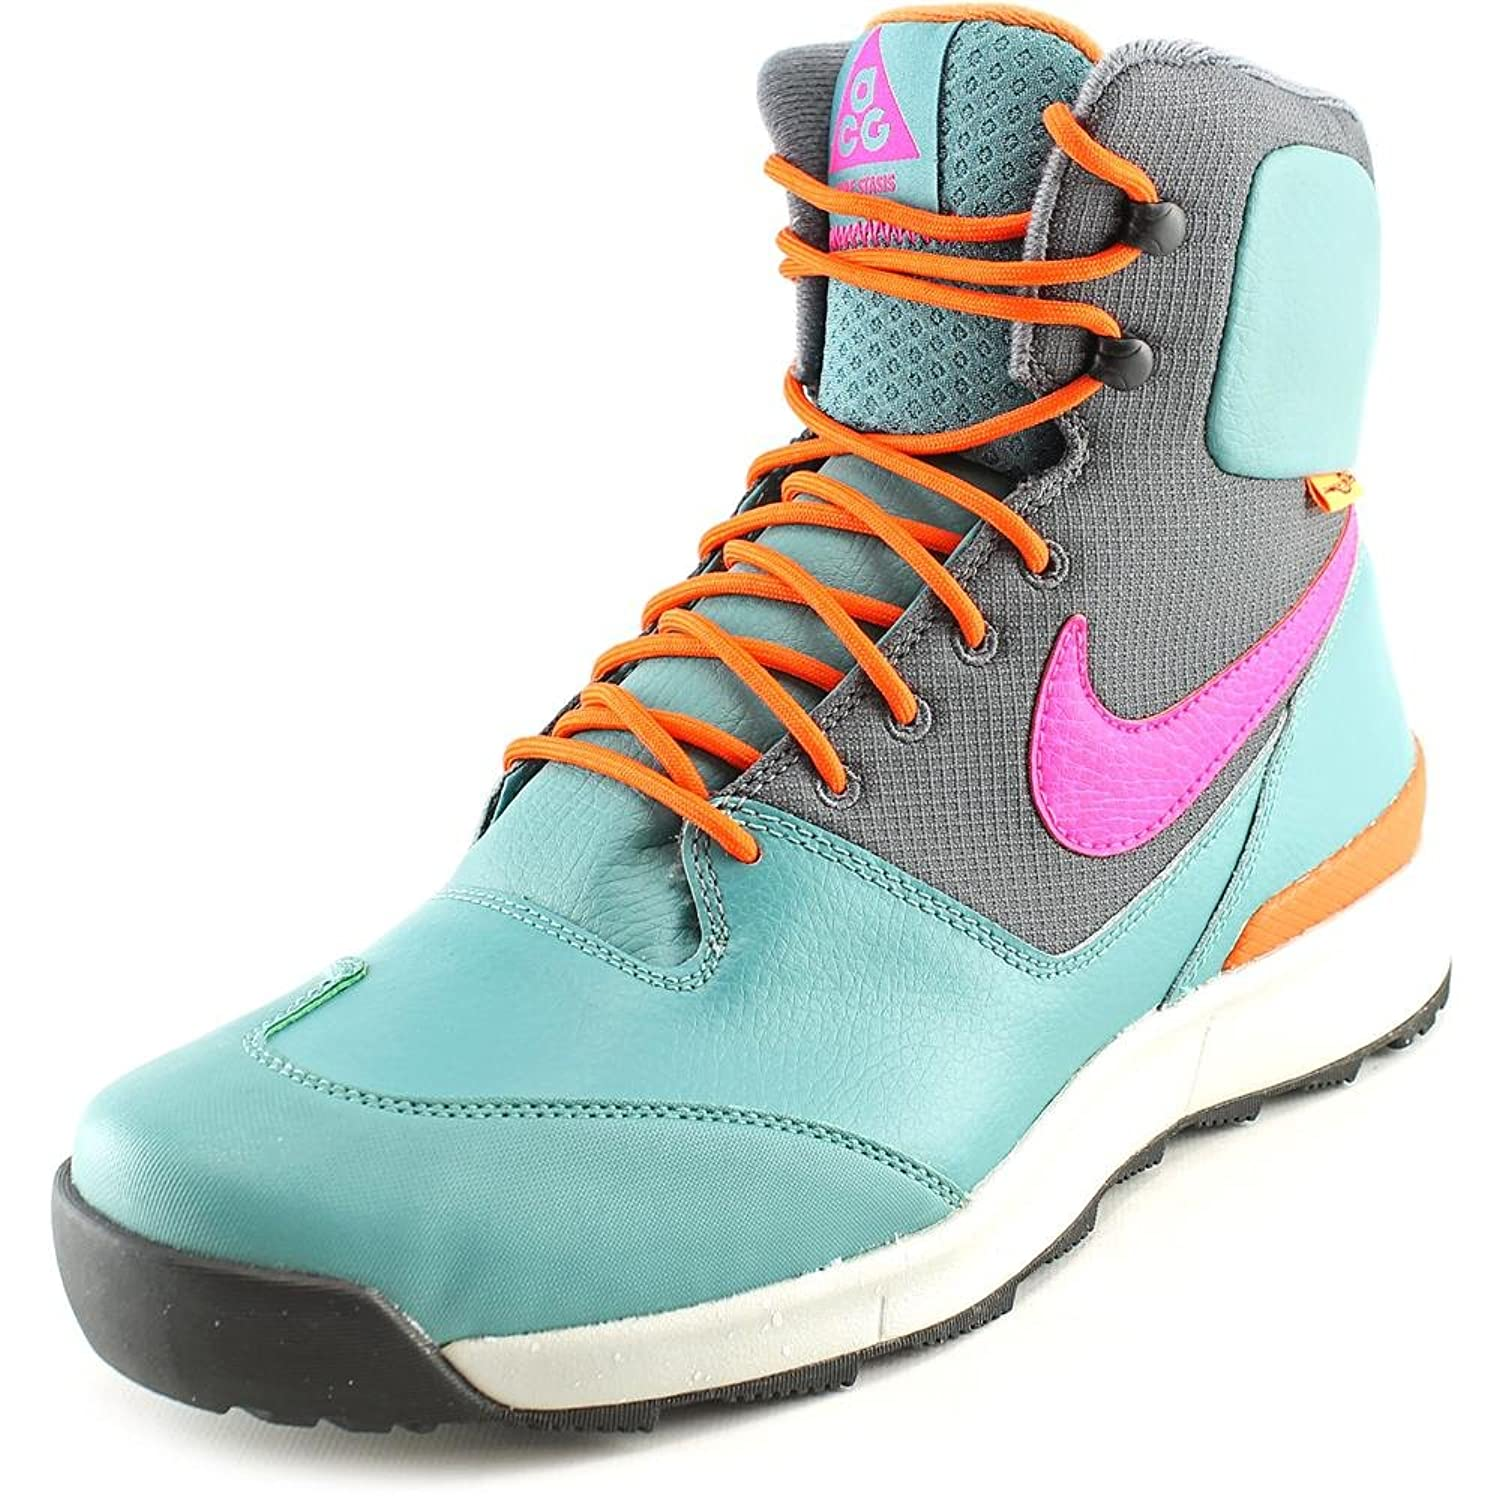 NIKE STASIS ALL CONDITIONS GEAR BOOTS MINERAL TEAL PINK FOIL